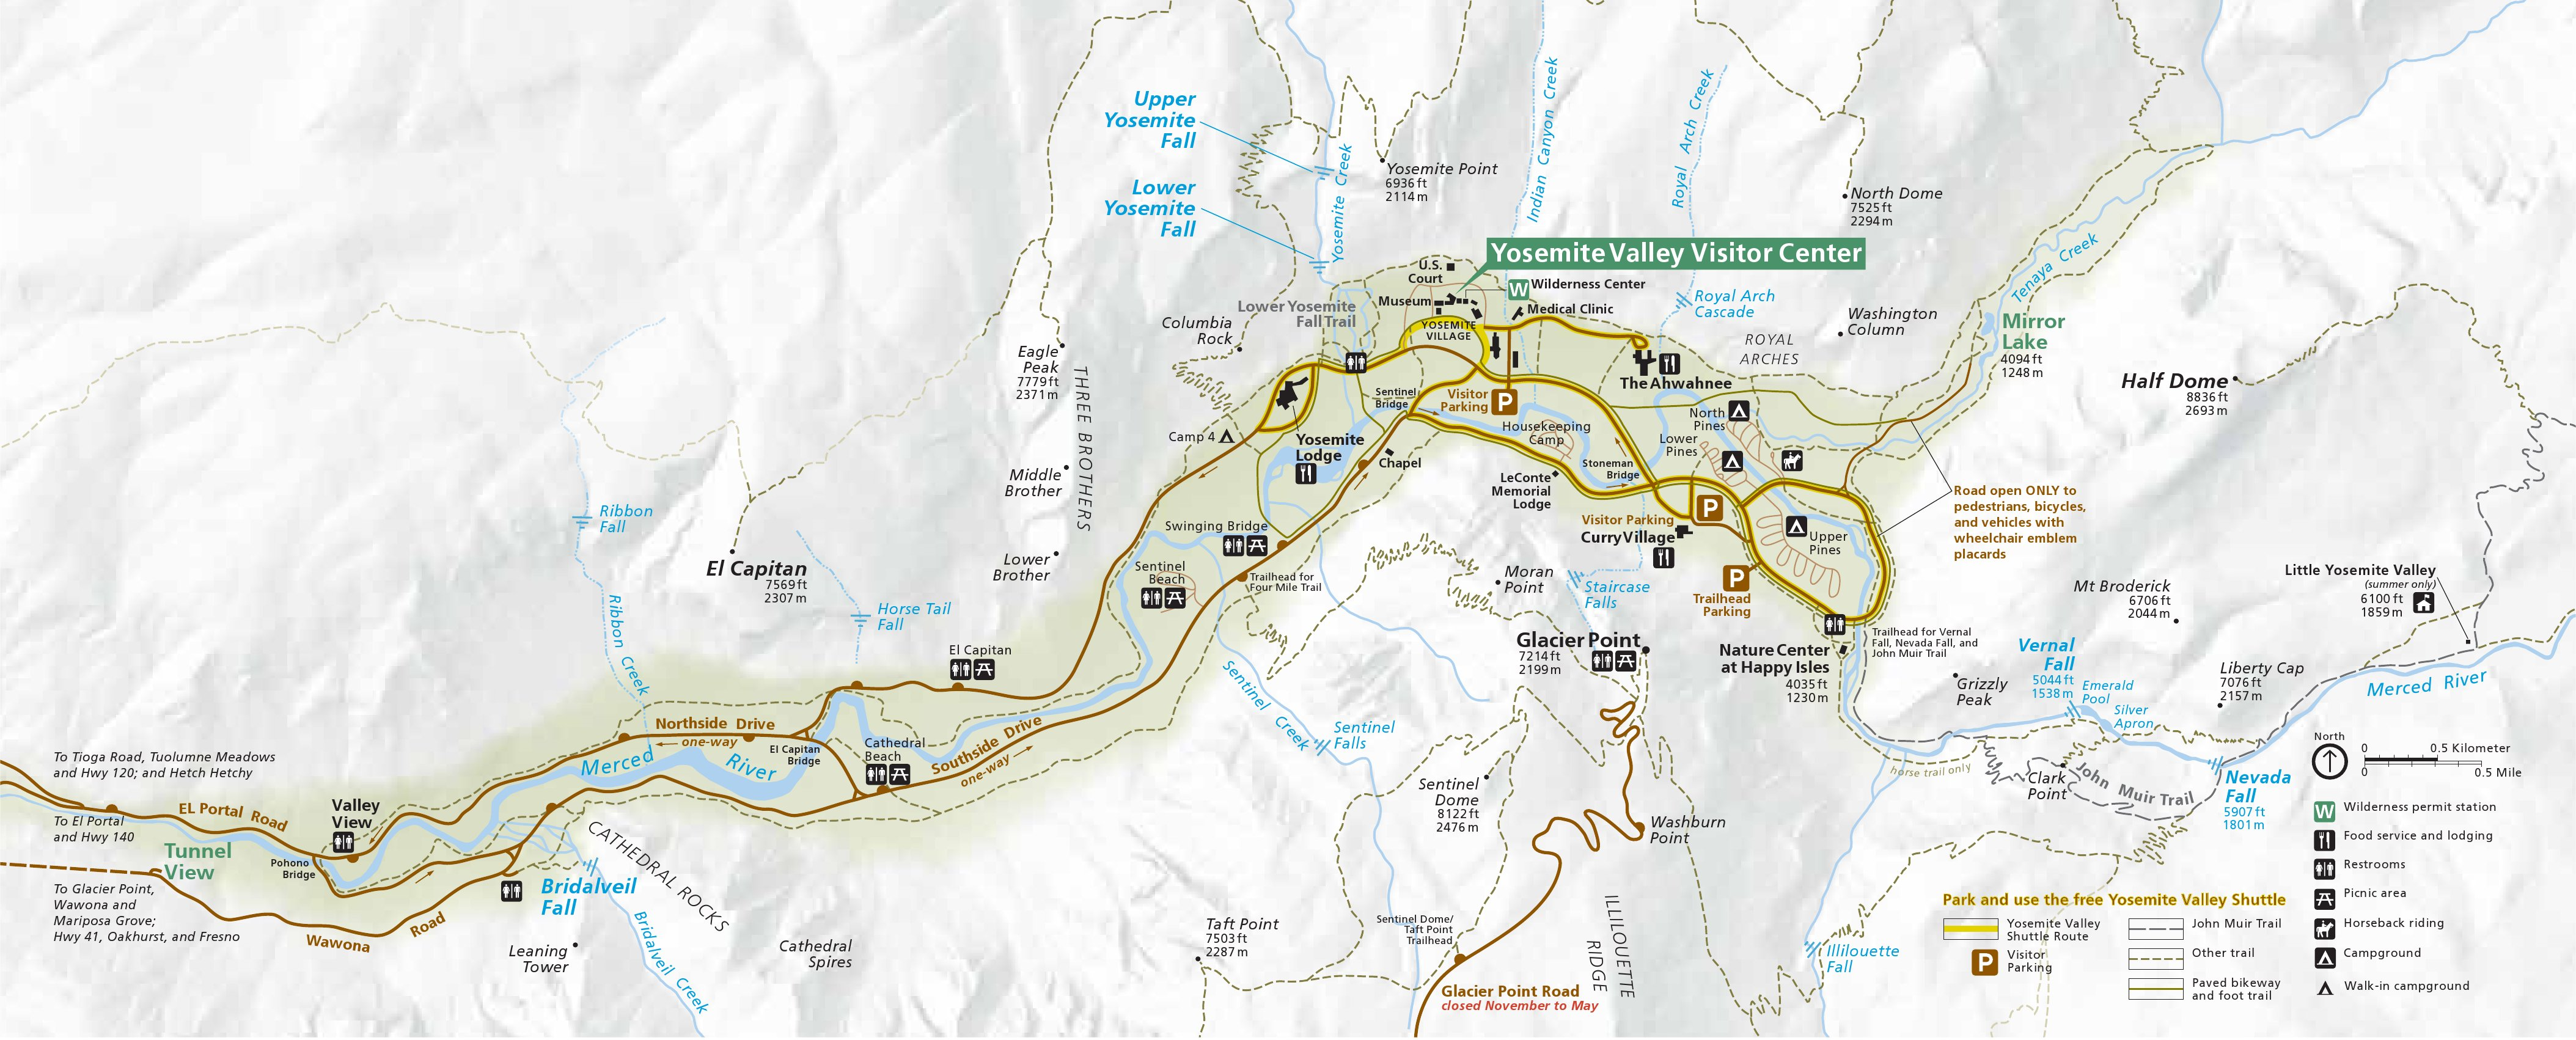 Yosemite Maps | NPMaps.com - just free maps, period.